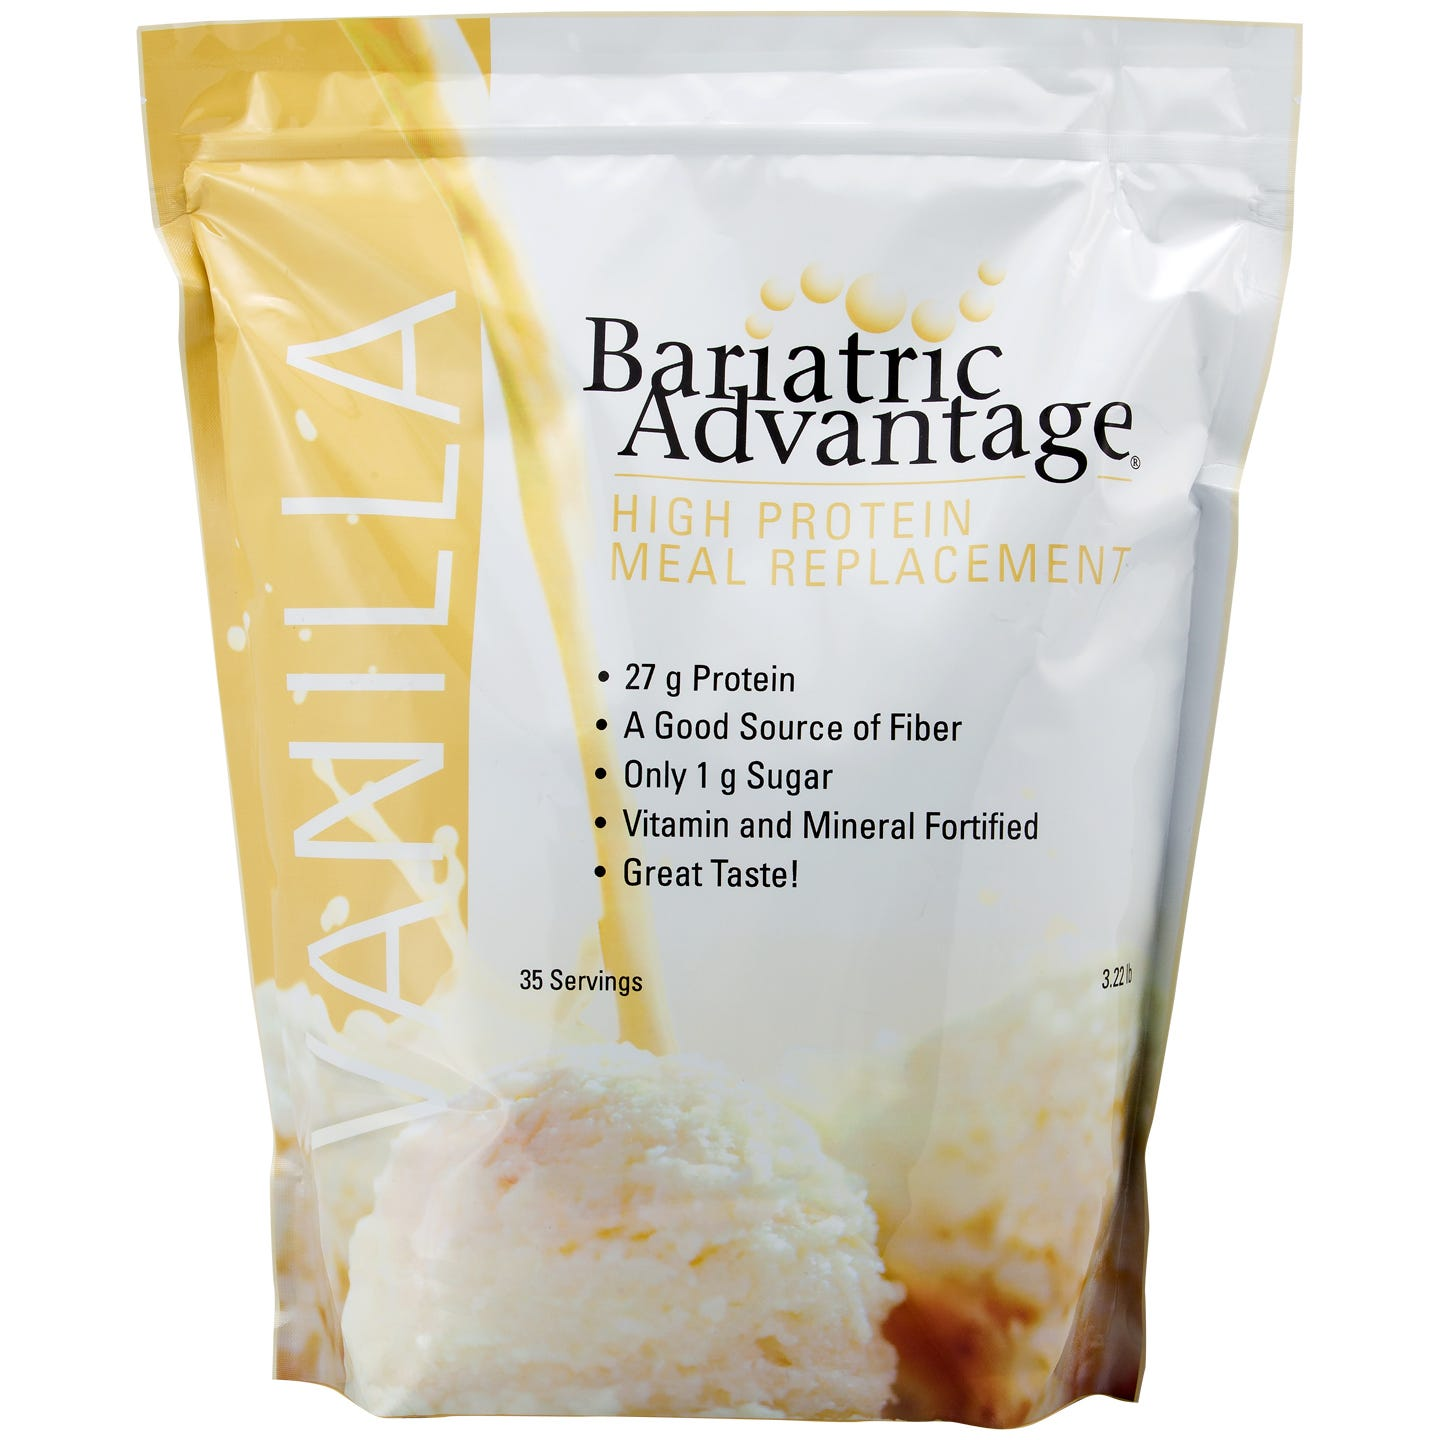 Bariatric Advantage Meal Replacement Shakes, 35 Servings - Vanilla